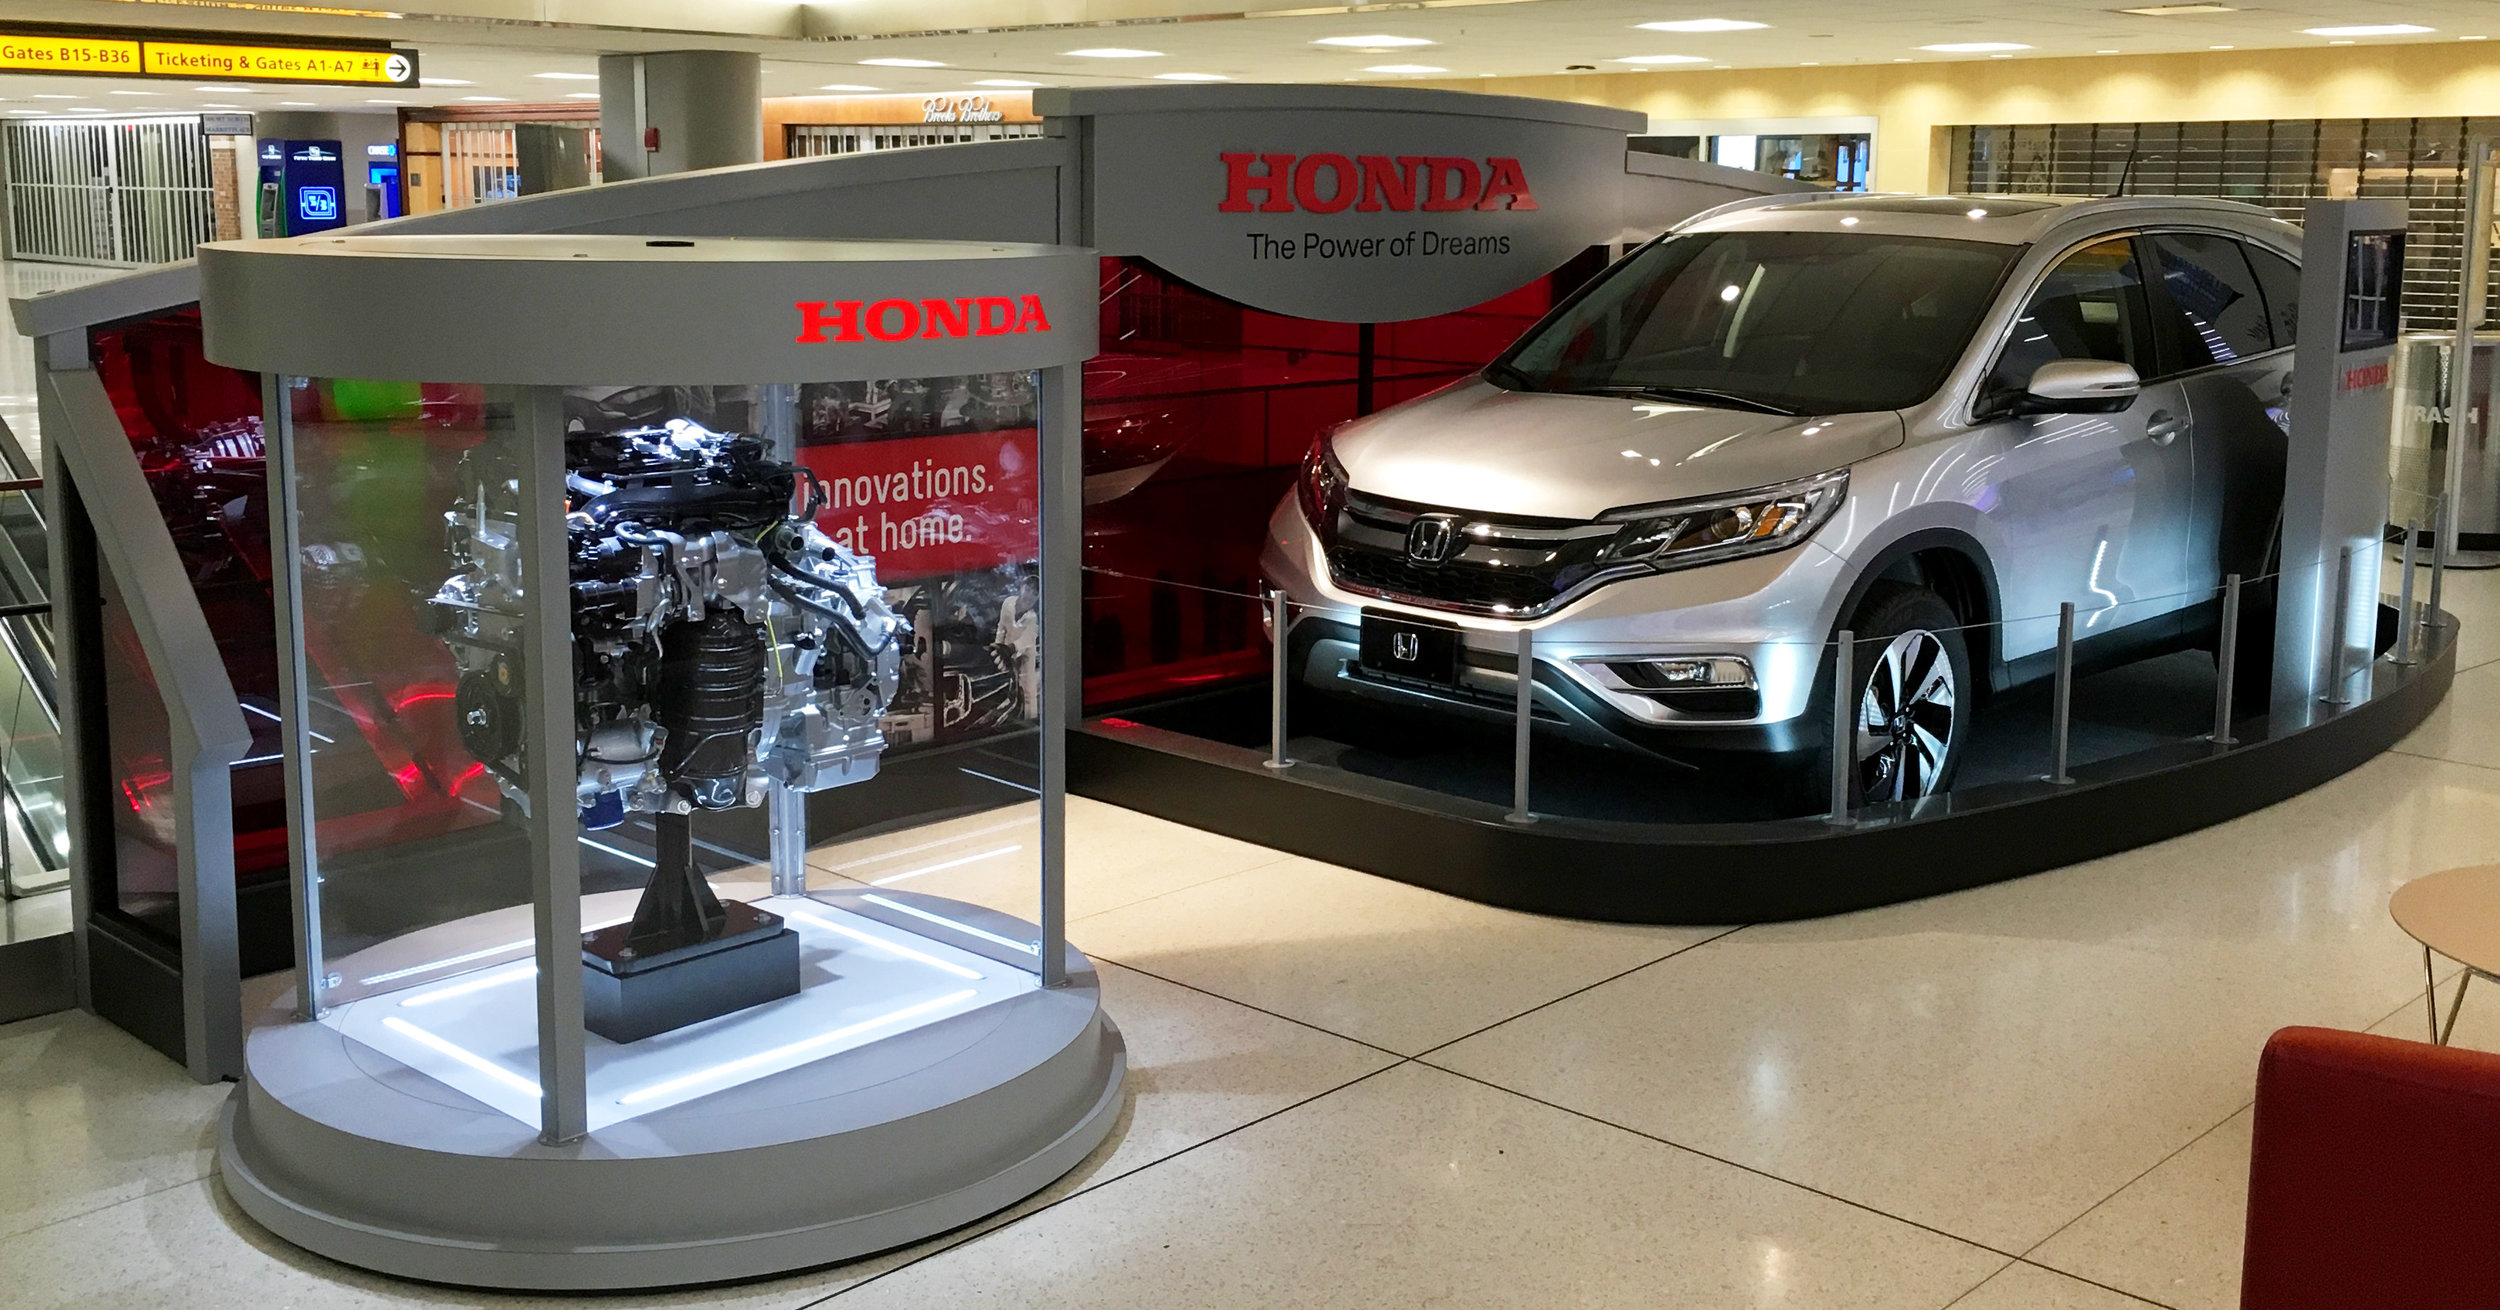 Honda Vehicle Columbus Airport Display